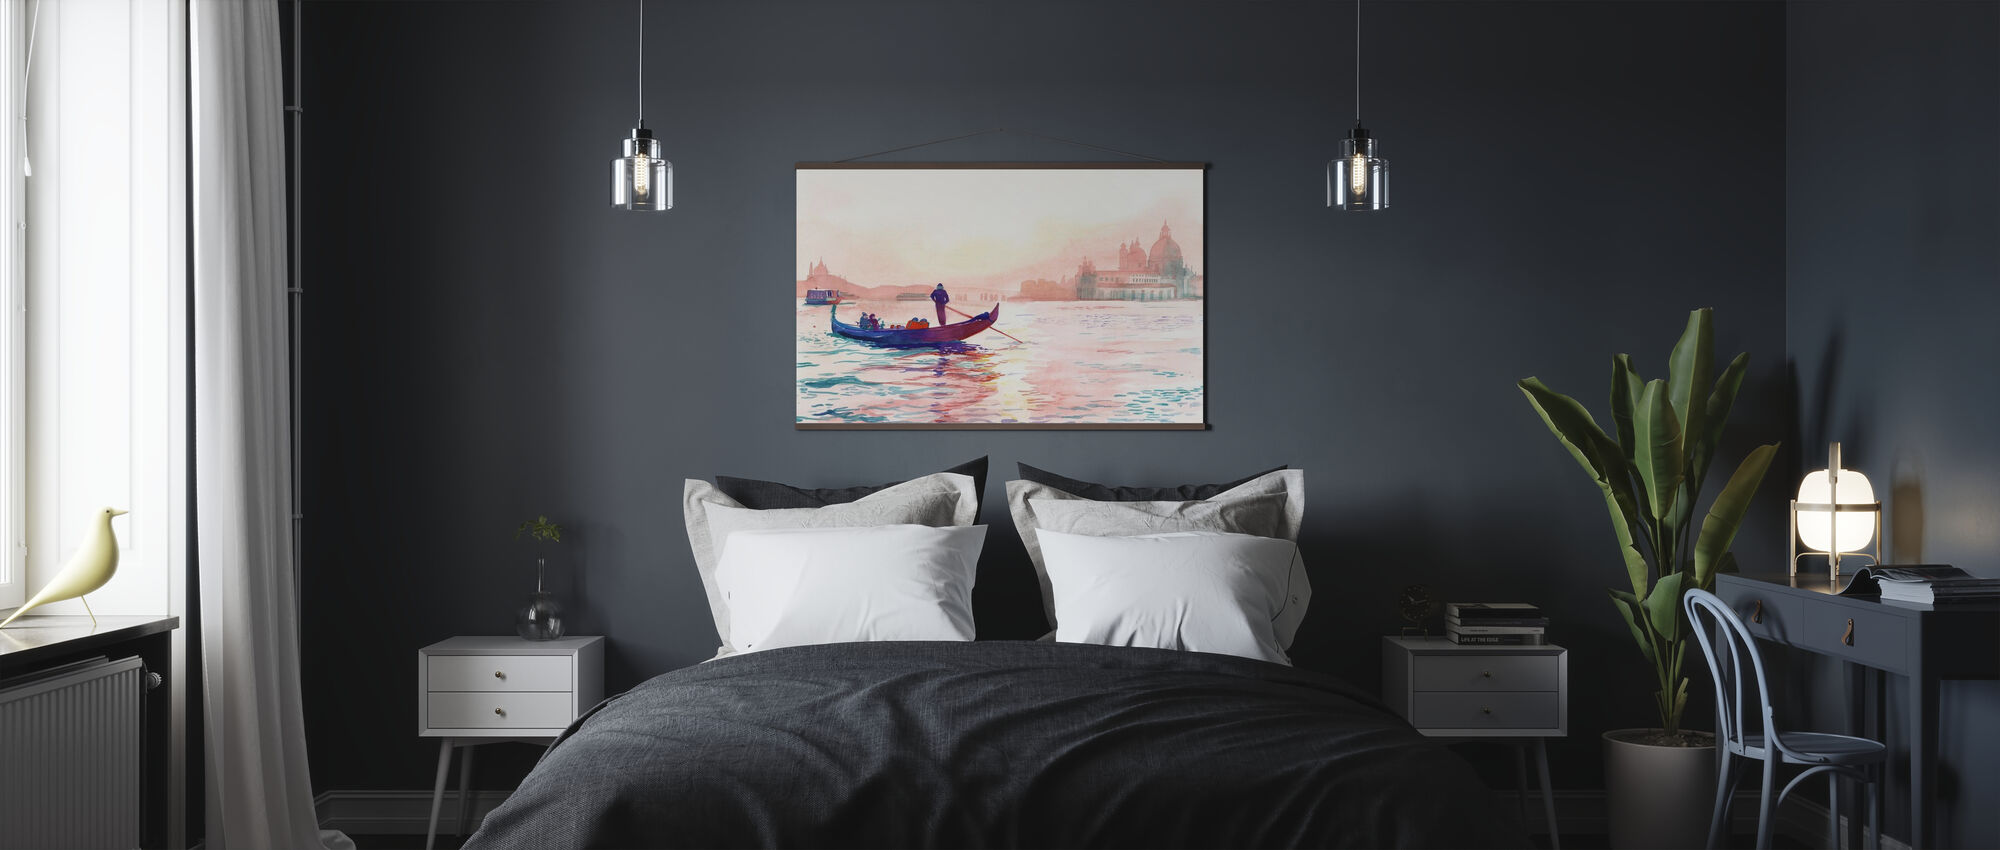 The Grand Hotel Venice - Poster - Bedroom